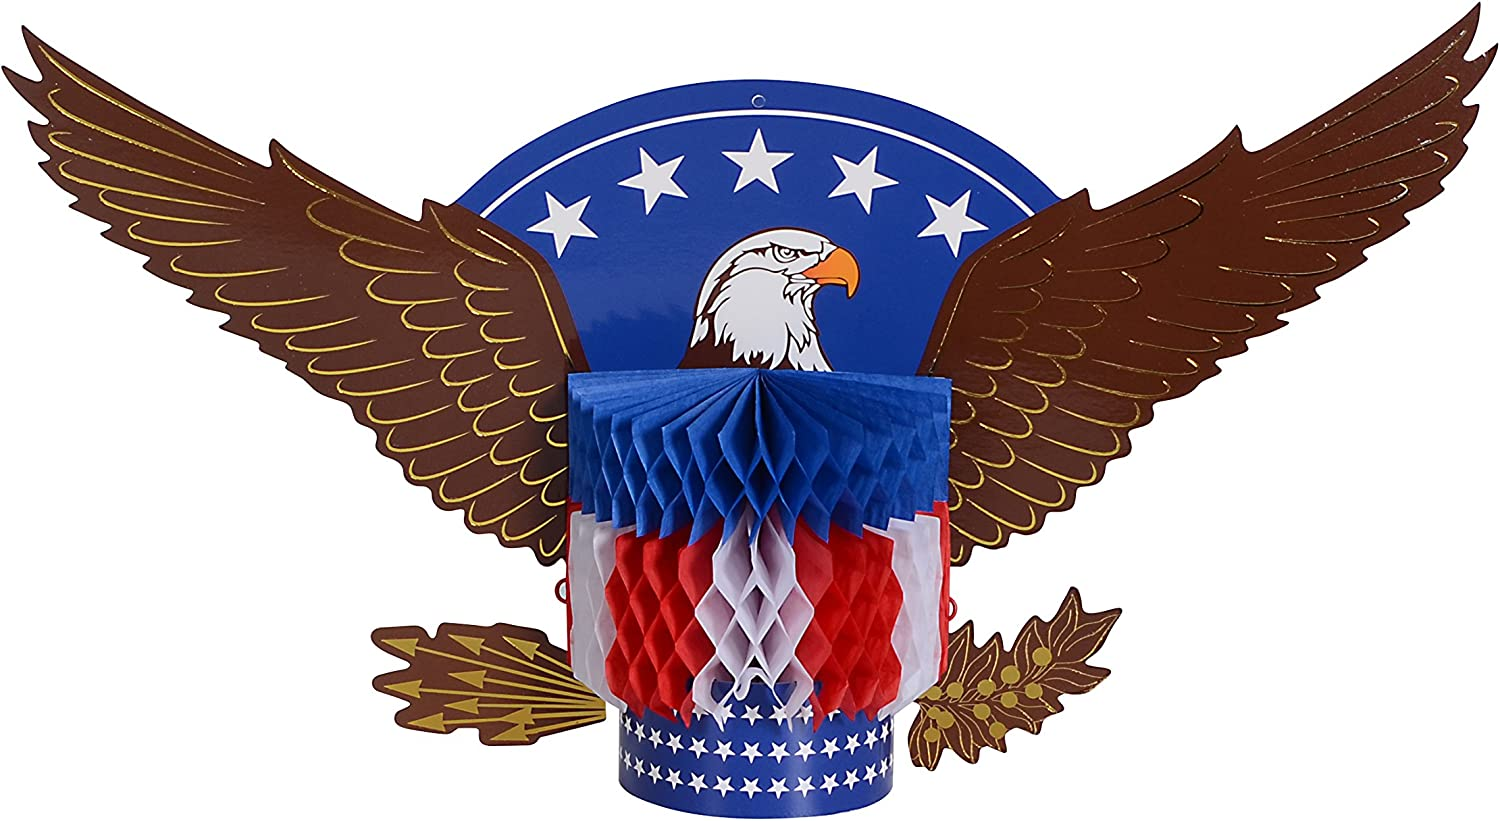 PAPER JAZZ Bald Eagle Table Centerpiece for Patriotic Day Party Decoration for Independence Day Labor Day July 4th Memorial Day Veteran Day Presidency Day (Eagle ONLY)